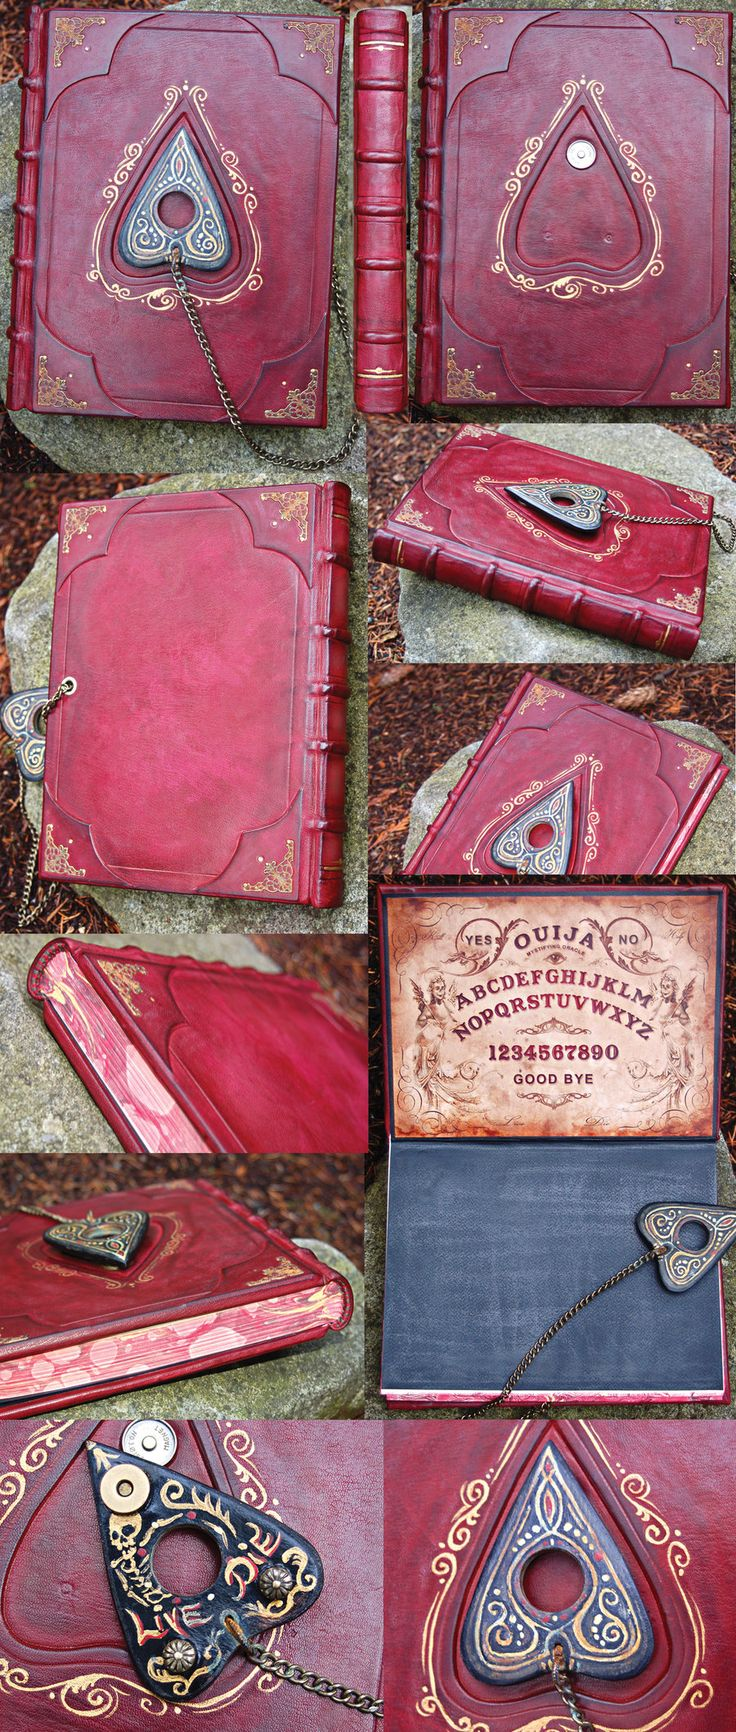 Victorian Ouija Board Spirit Jornal  by ~BCcreativity  Artisan Crafts / Folding & Papercraft / Bookbinding & Bookmaking	©2012 ~BCcreativity  This one took some time to create. Encased in a beautiful Italian goats leather hand tooled. I created a Planchette and designed a Ouija board that is on the inside cover.   The planchette is chained to the back cover and is connected on the front to a magnetic facet.  The text block is 8.5x11 and the finished size is 8.75x11.25  It contains marbled…